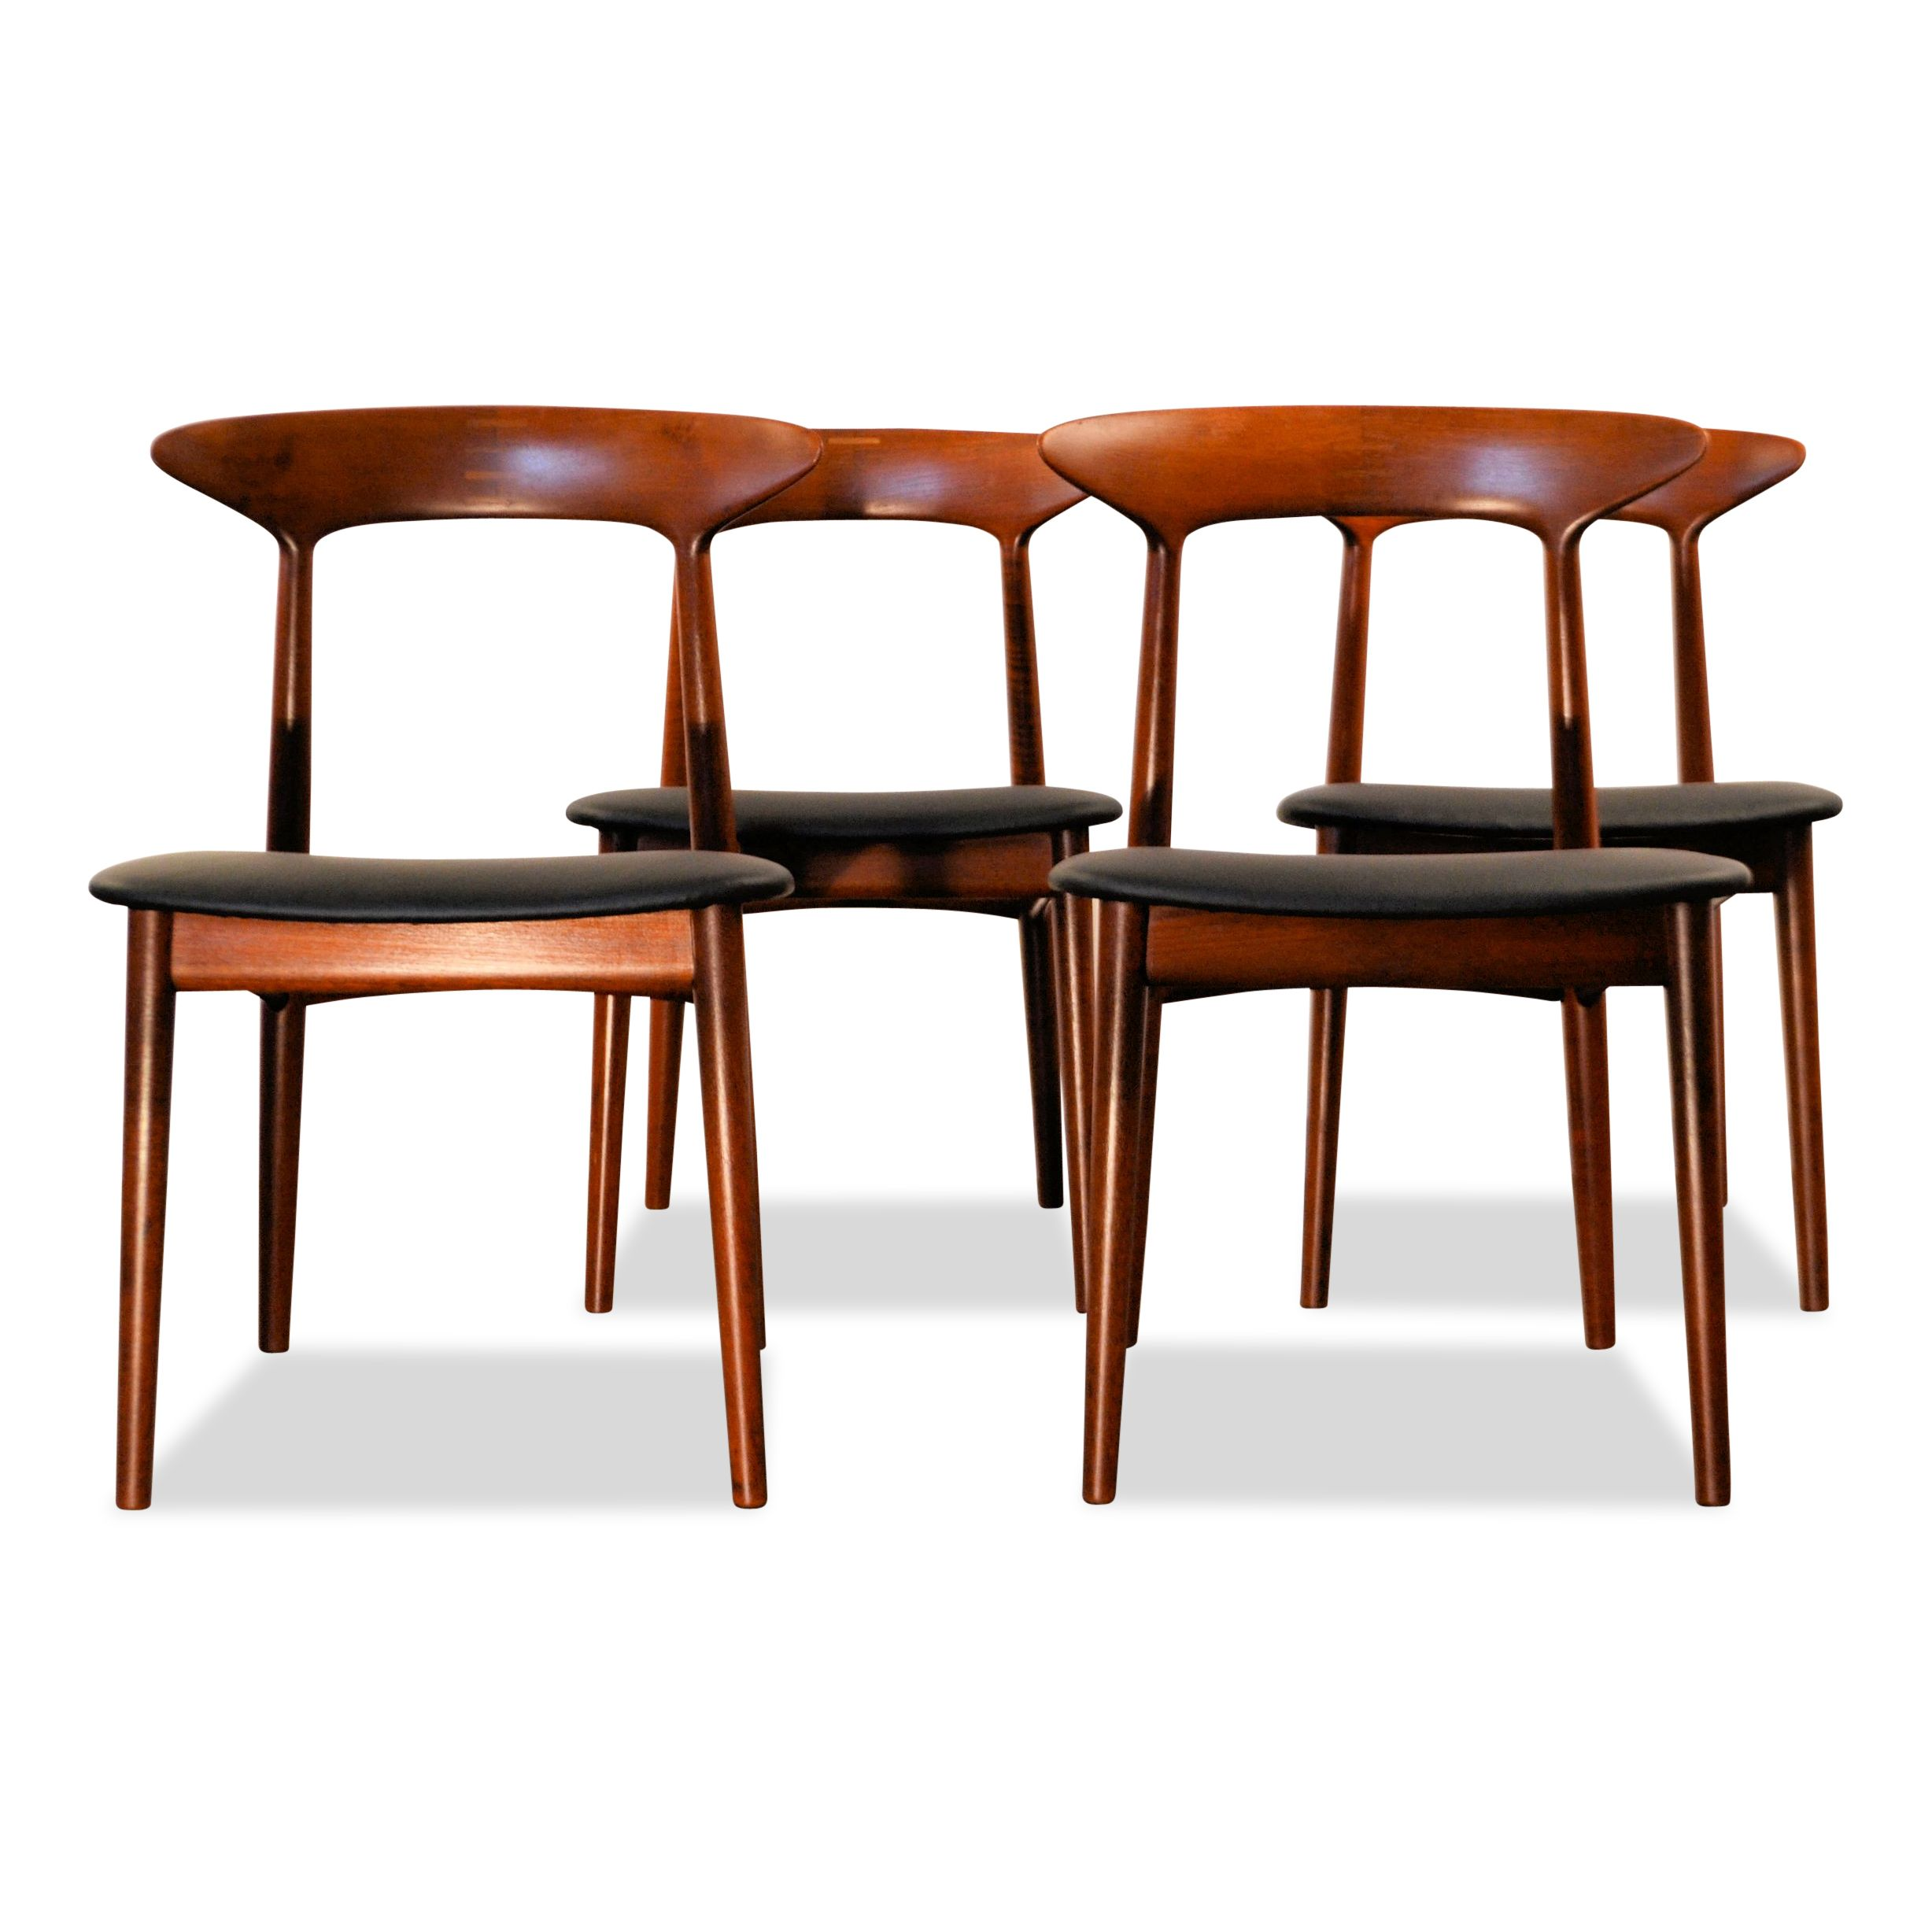 Vintage dining chairs designed by kurt østervig